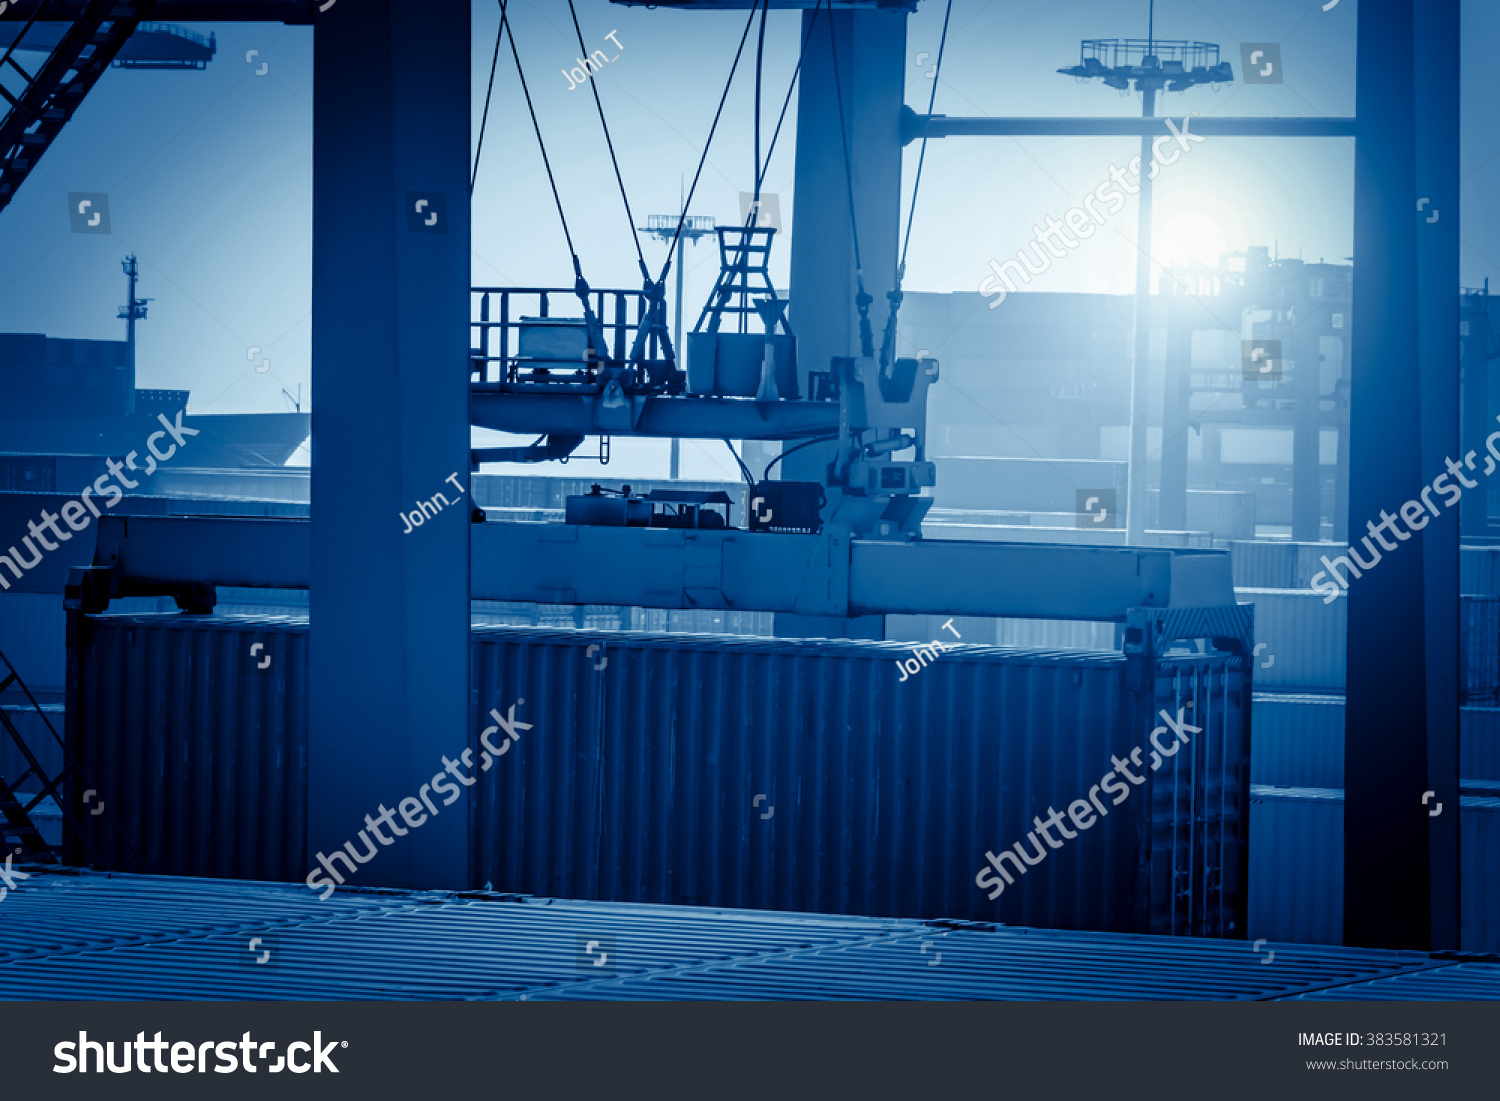 Industrial crane loading Containers in a Cargo freight ship